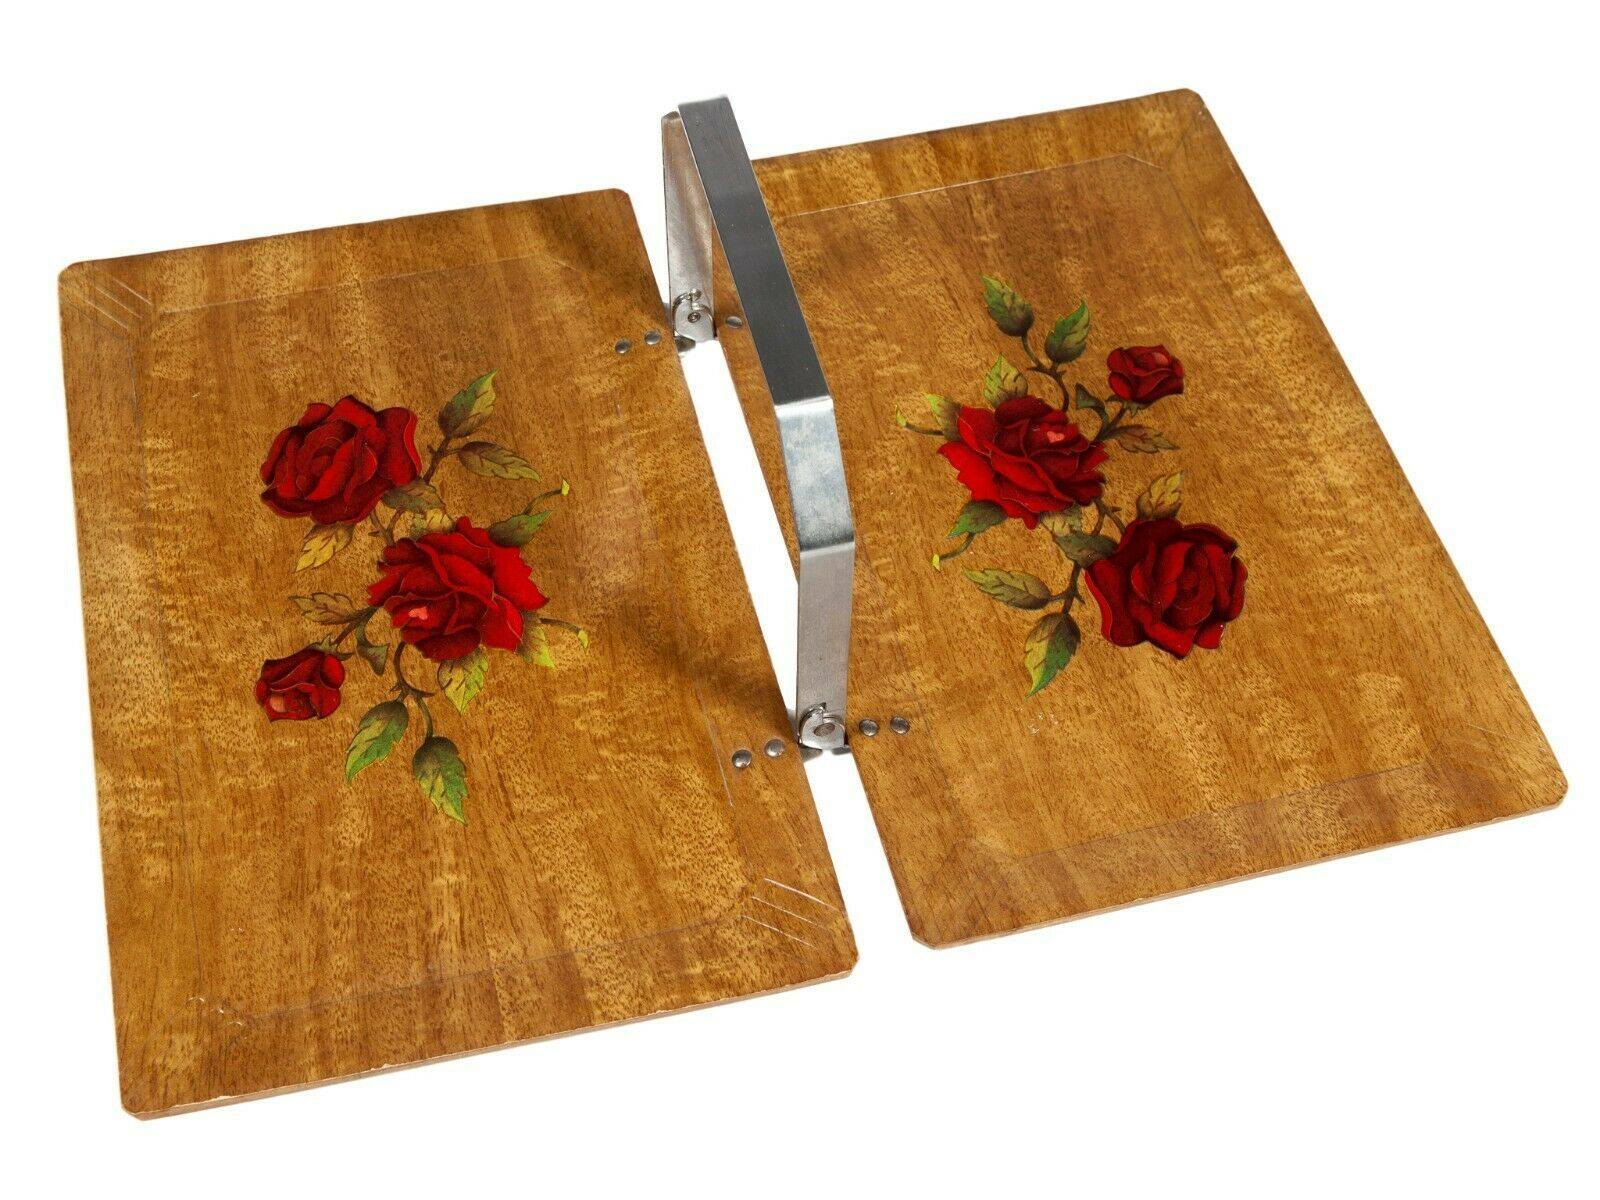 Primary image for FREE SHIP: Vintage Serving Tray - Folding Midcentury Haskelite Wood with Roses